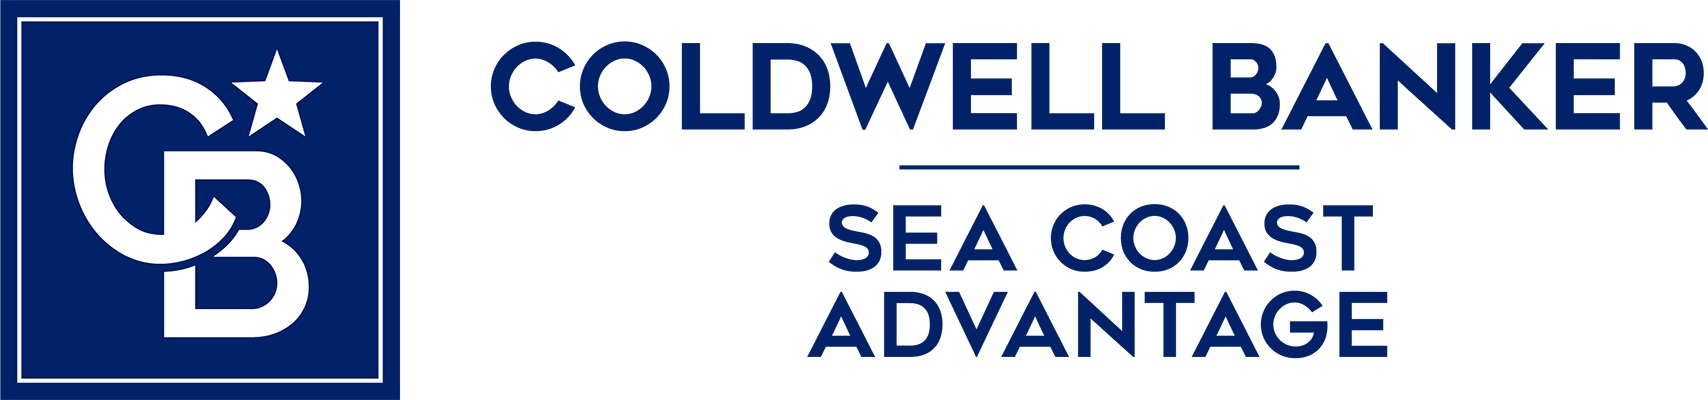 Ginger Harper - Coldwell Banker Sea Coast Advantage Realty Logo